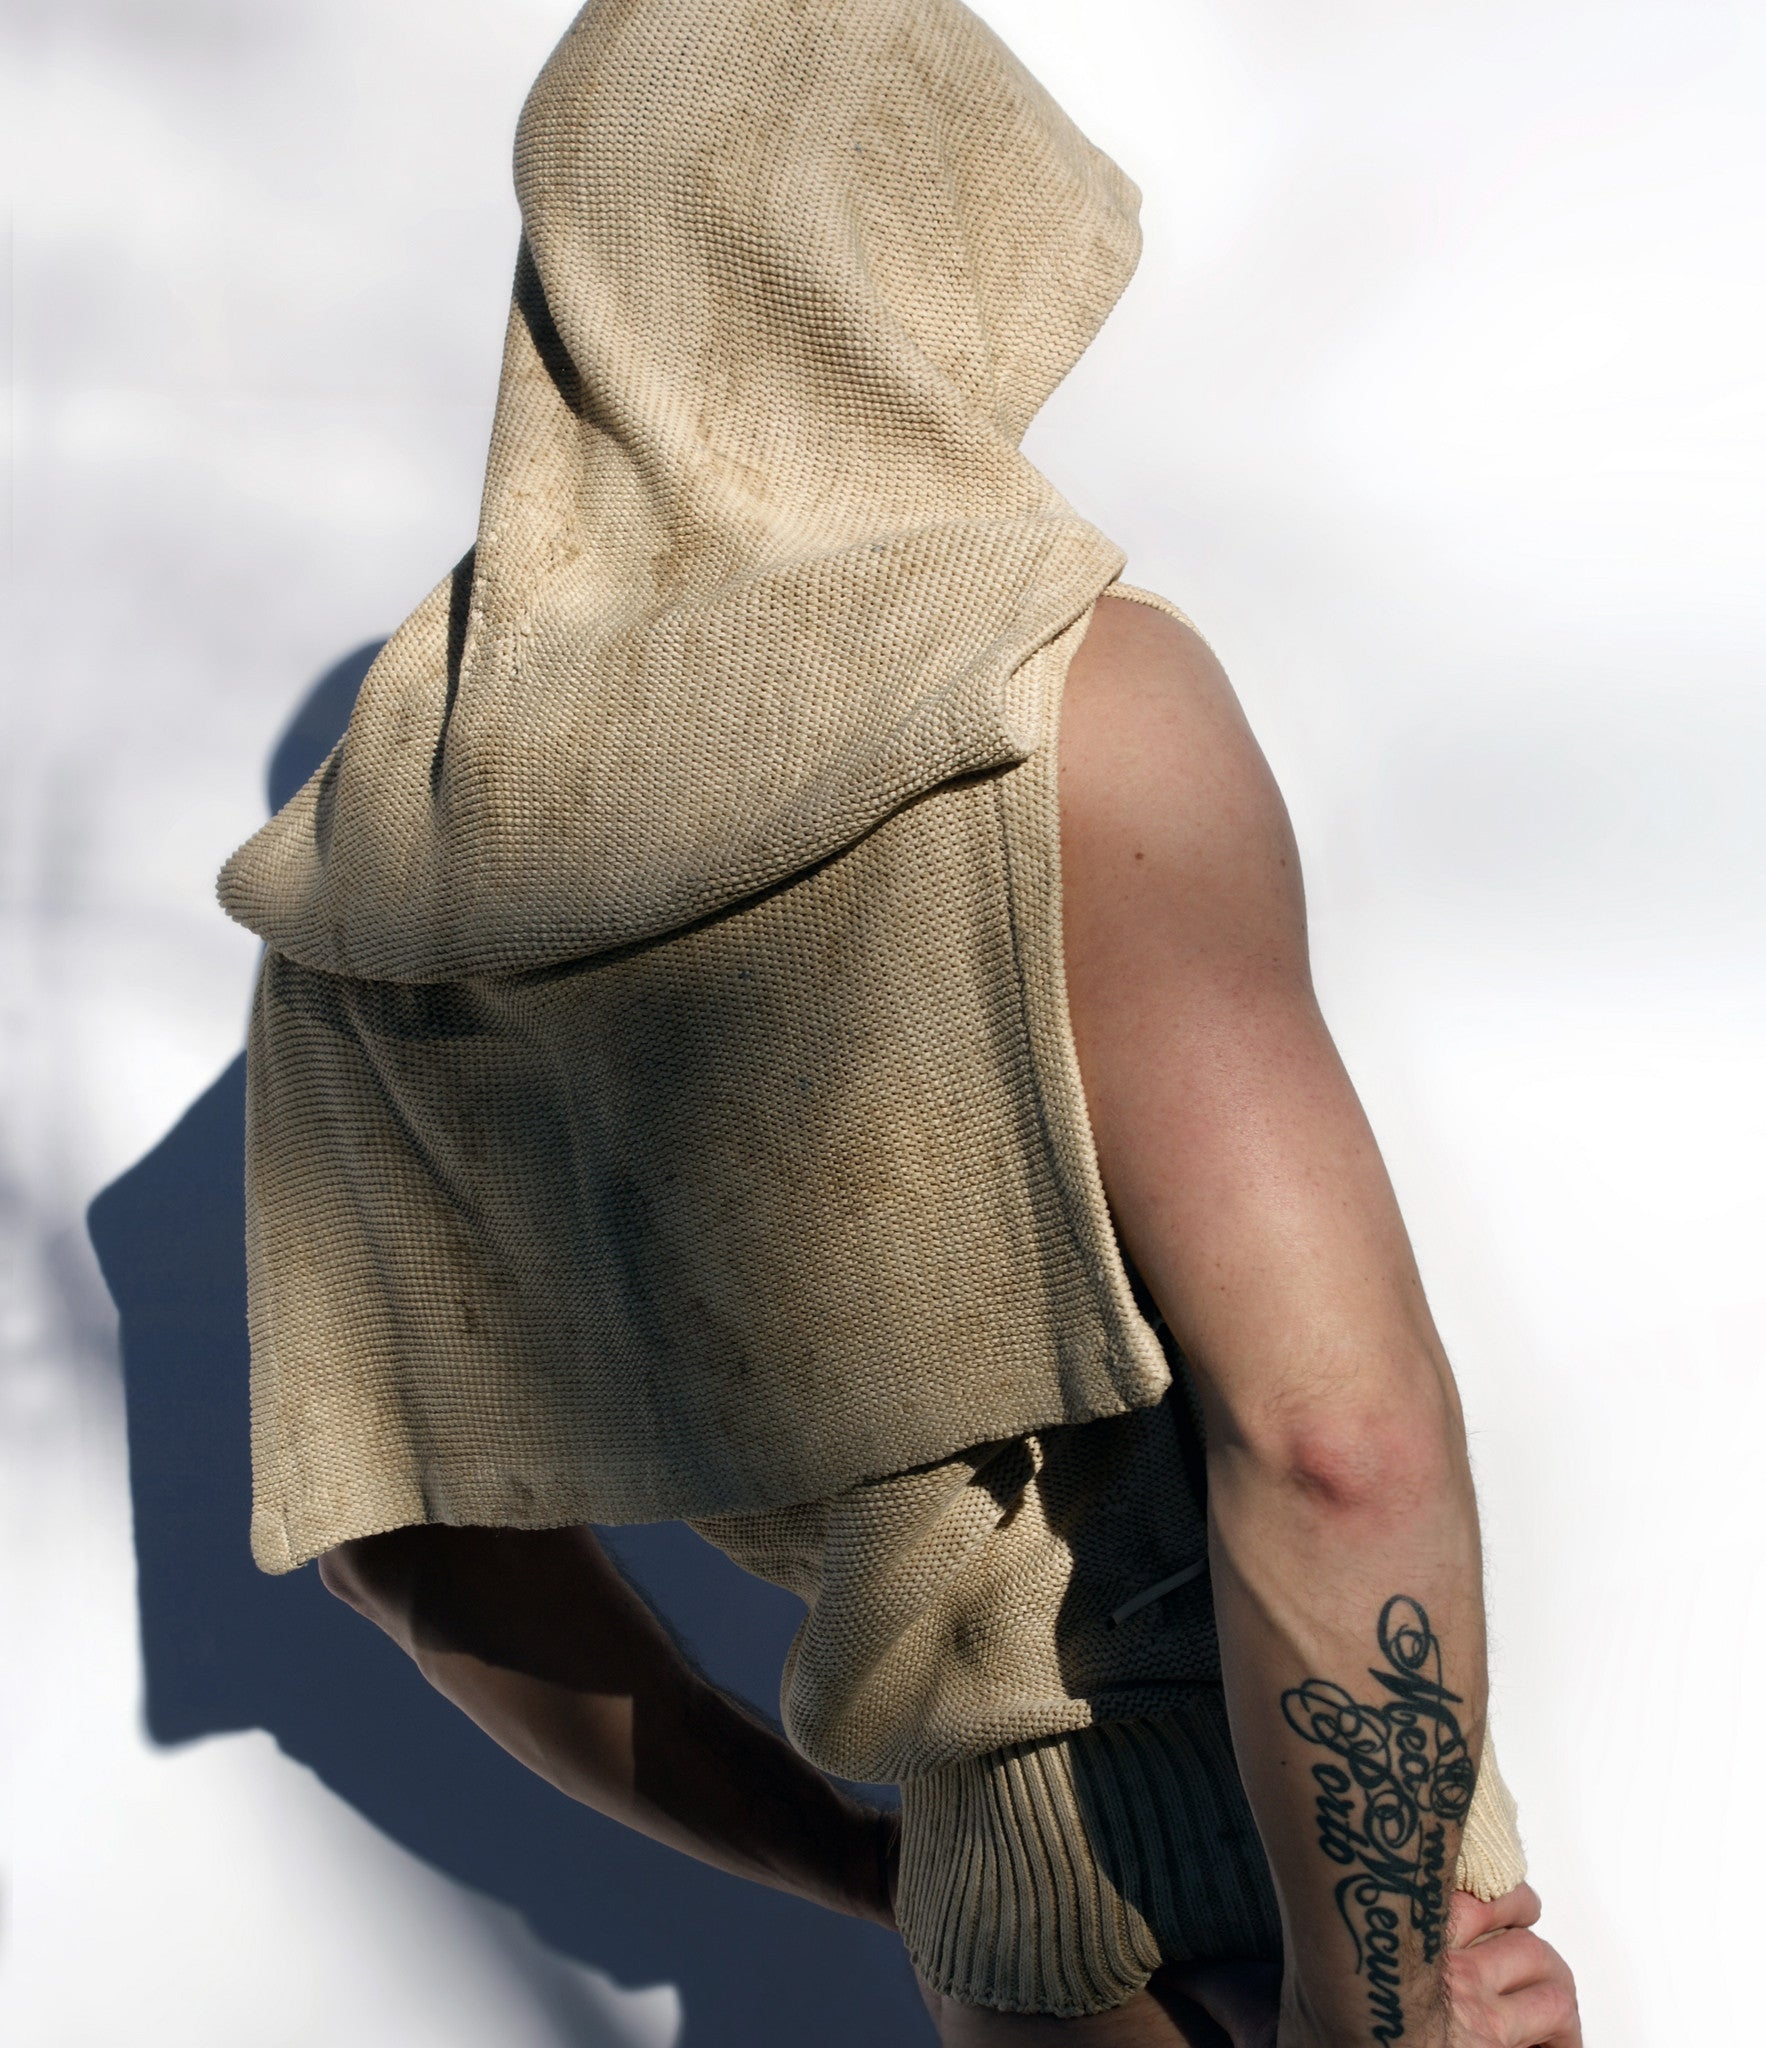 NESTORE TERRA raw wild-silk top with large hood, matured in the ground